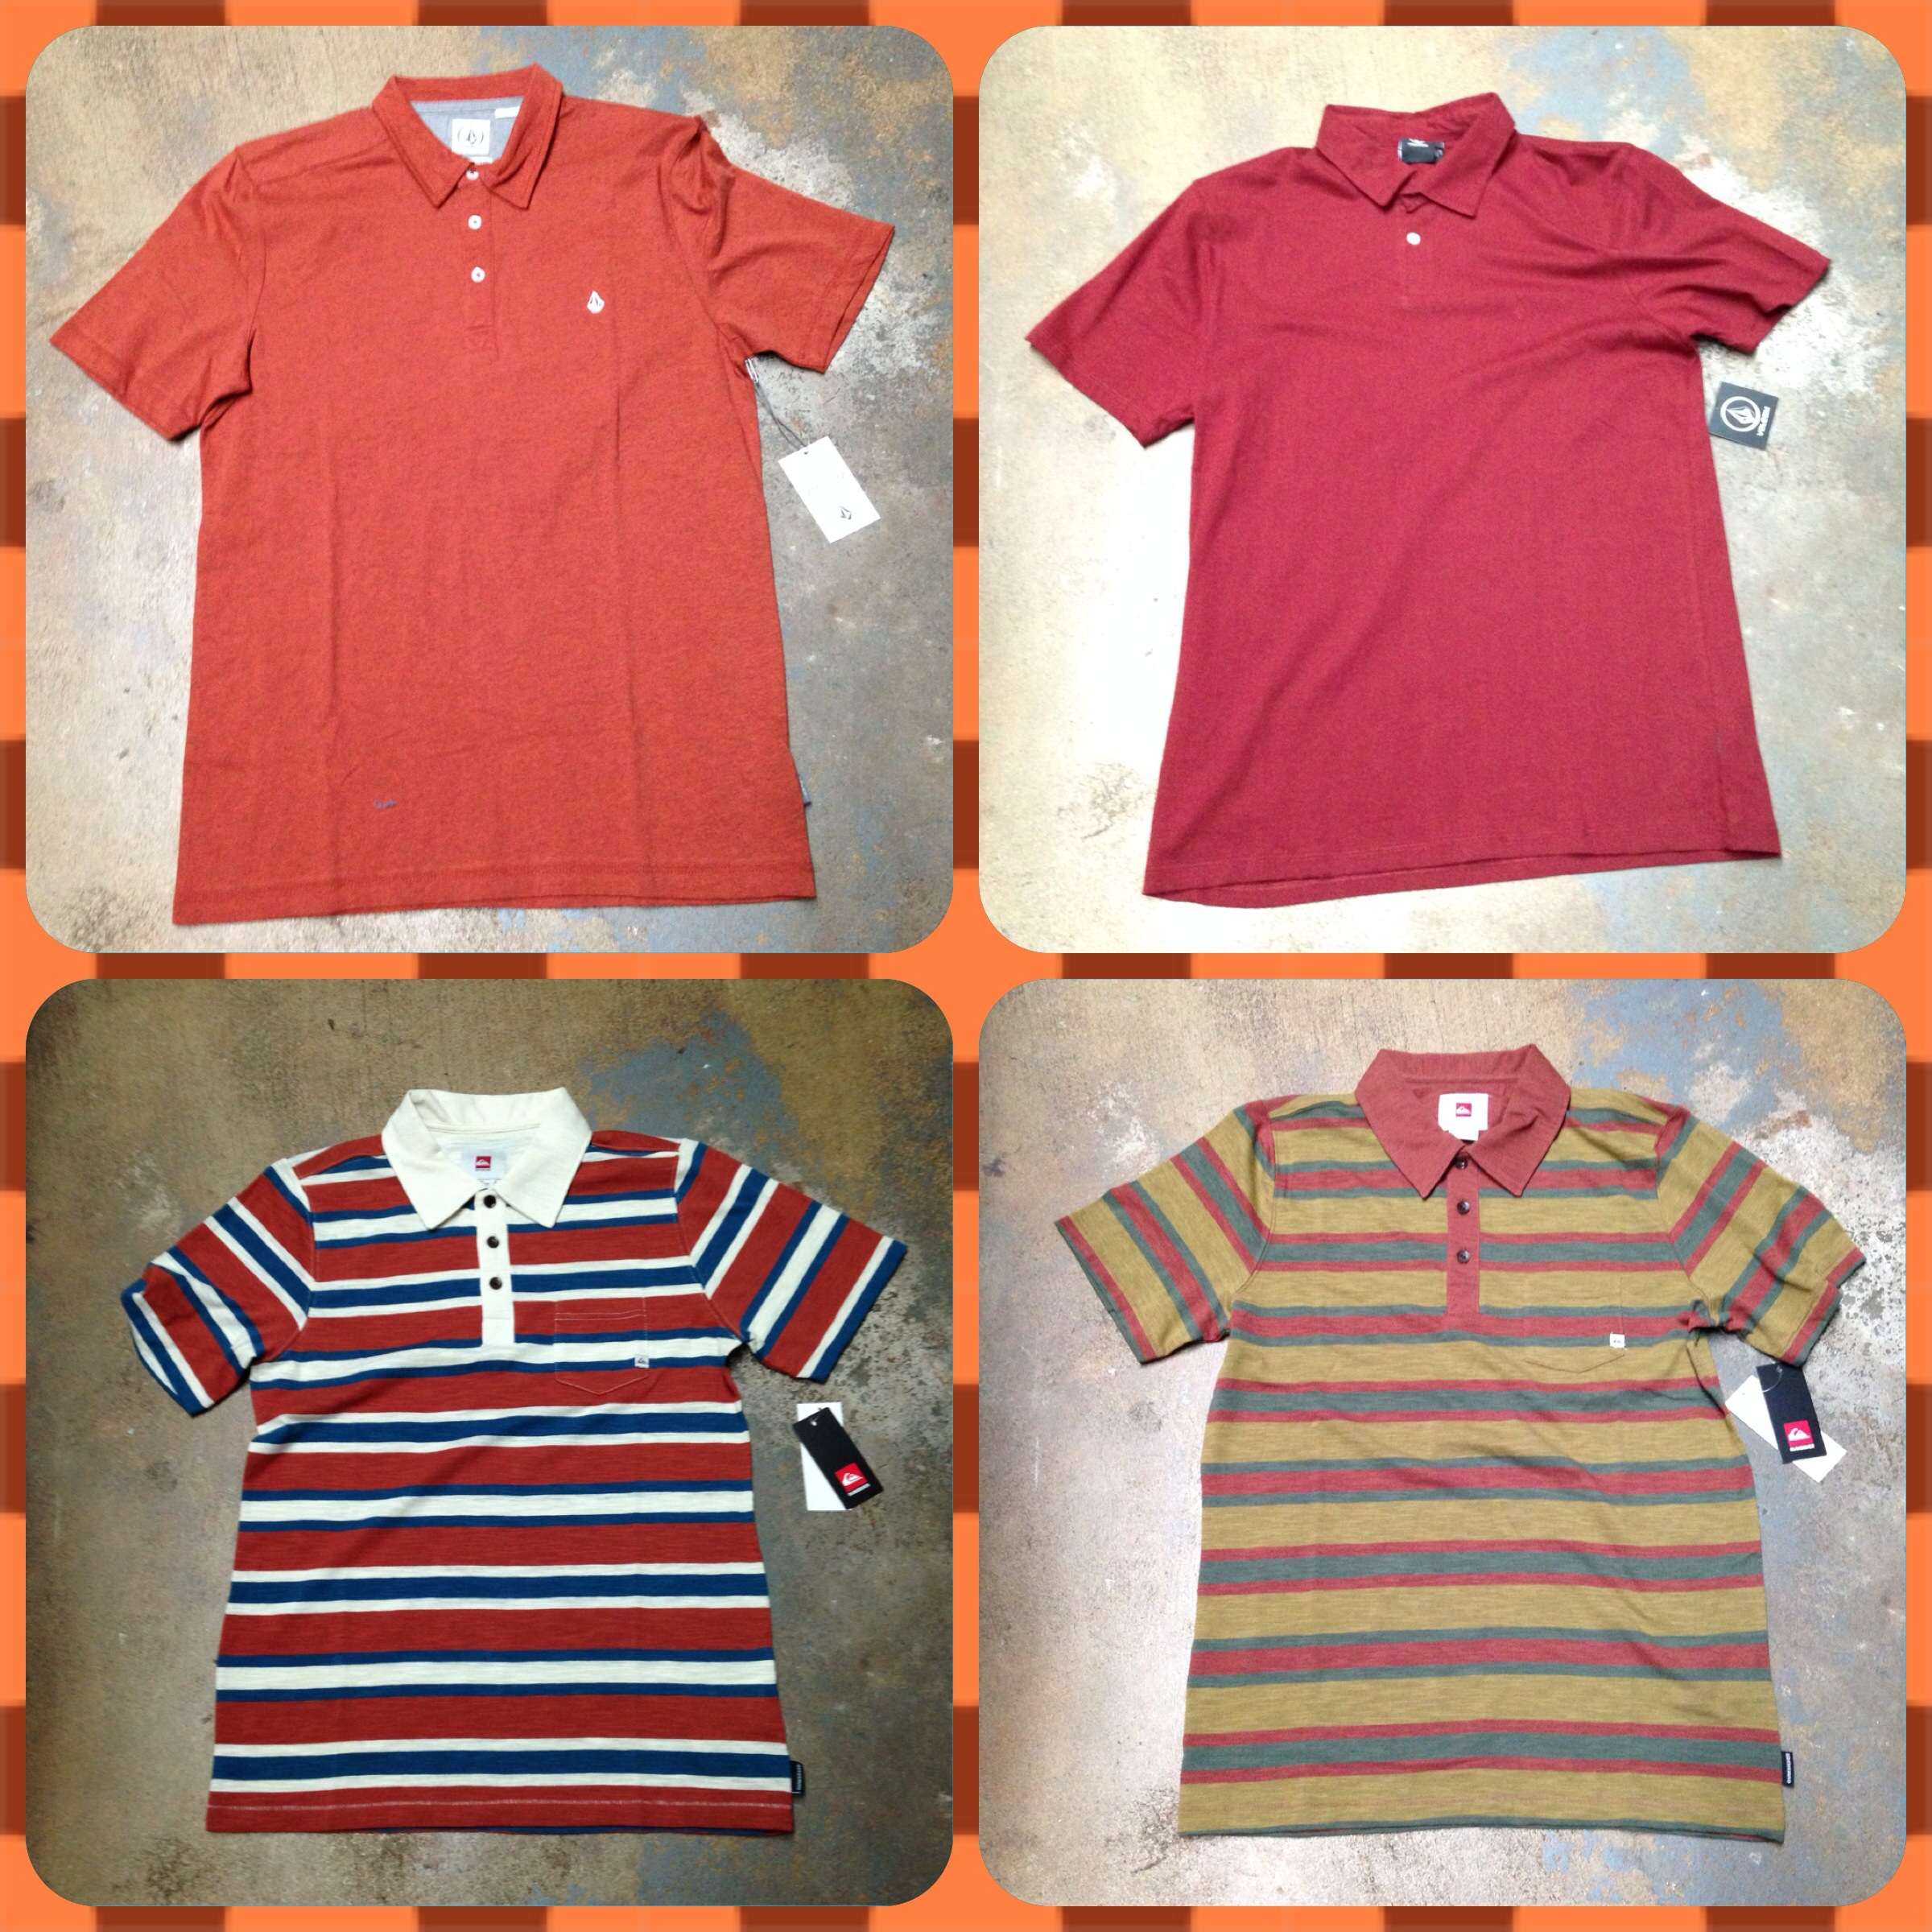 Polos from Volcom and Quiksilver